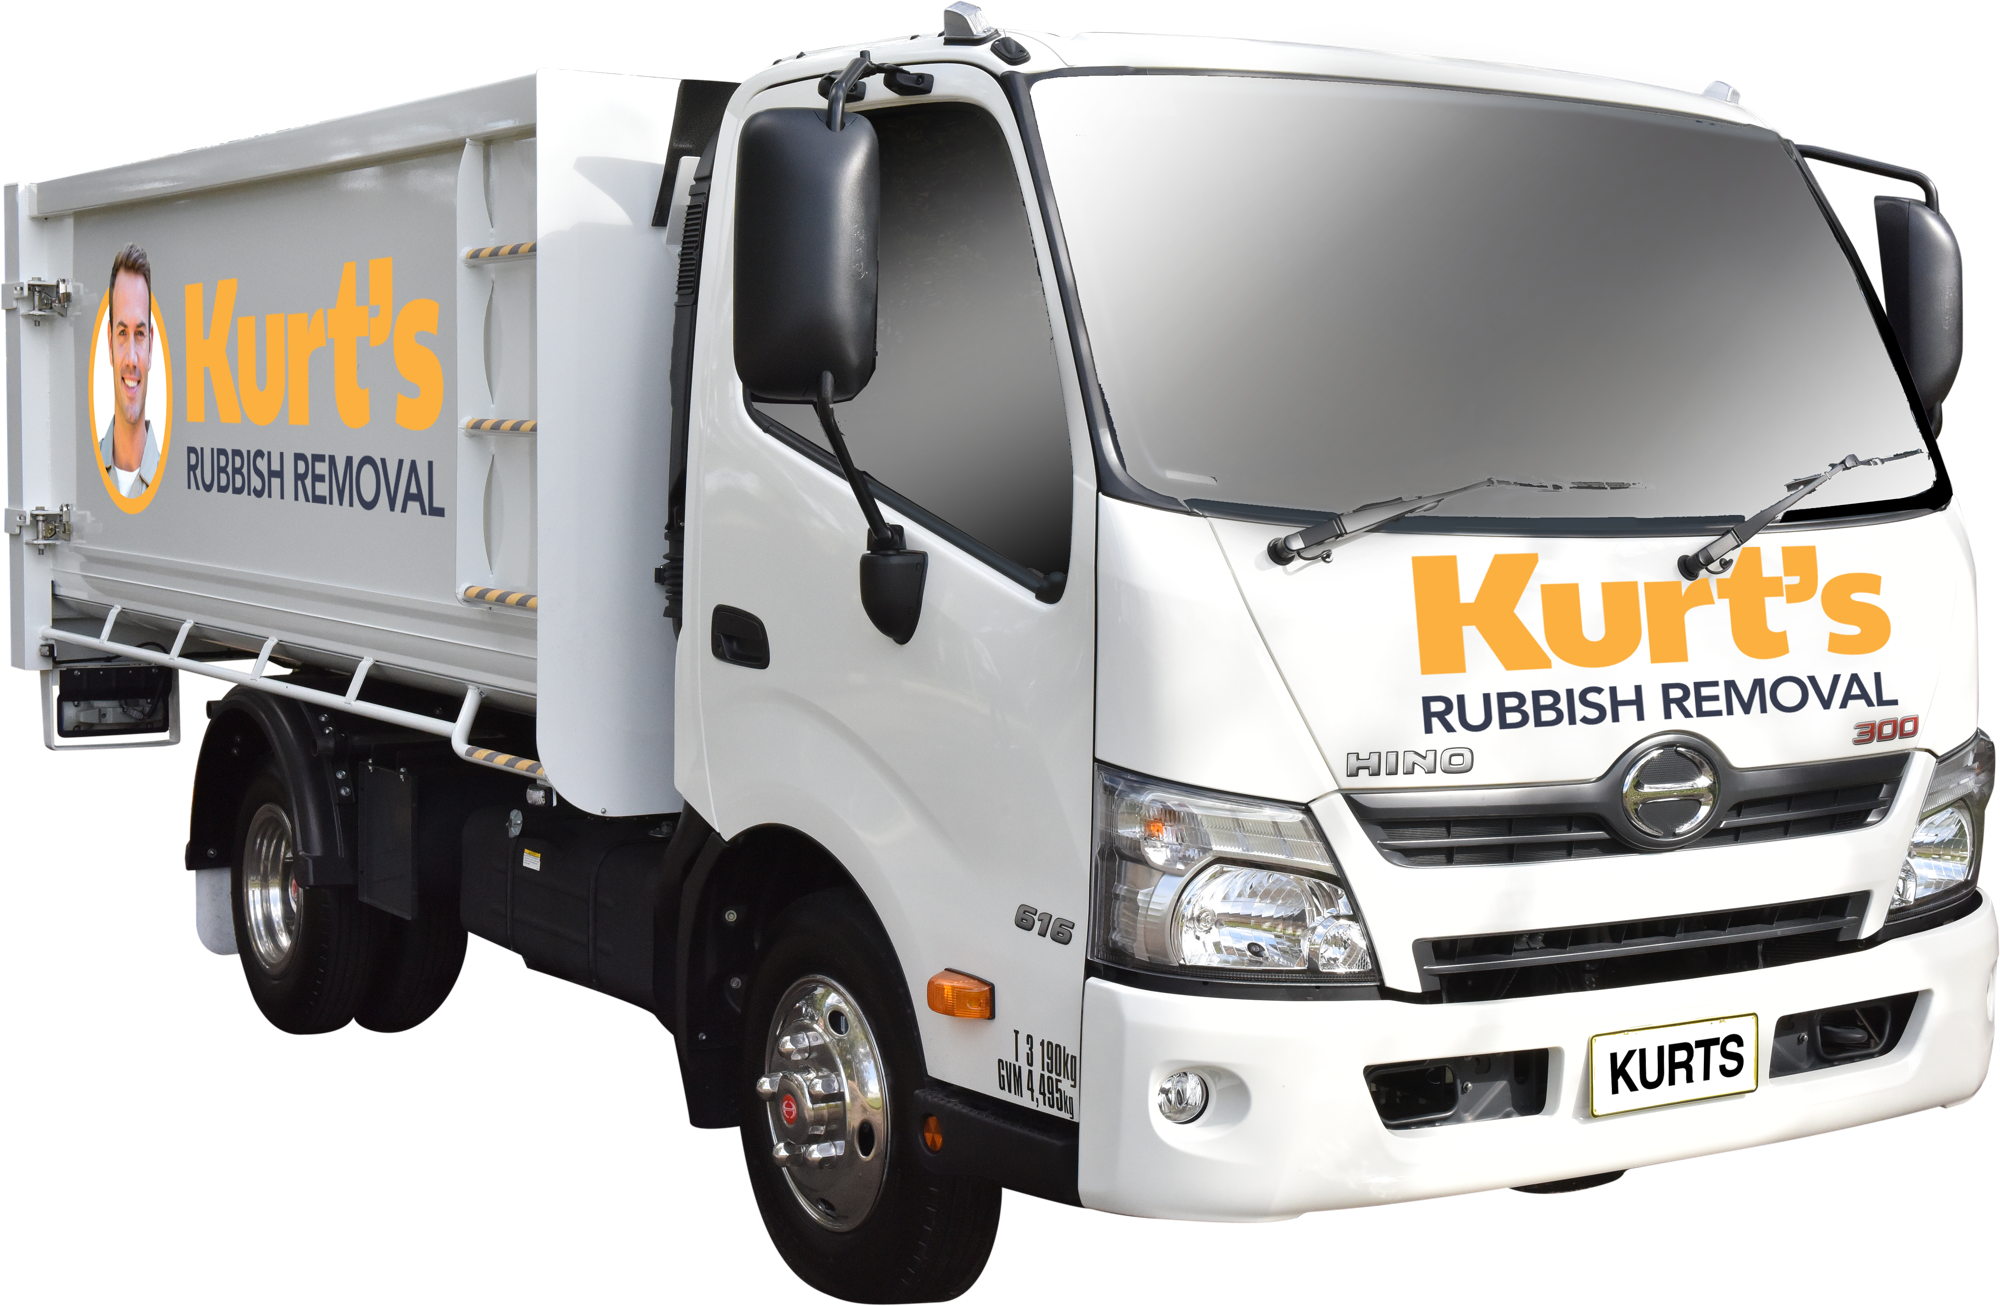 Kurt's Rubbish Truck